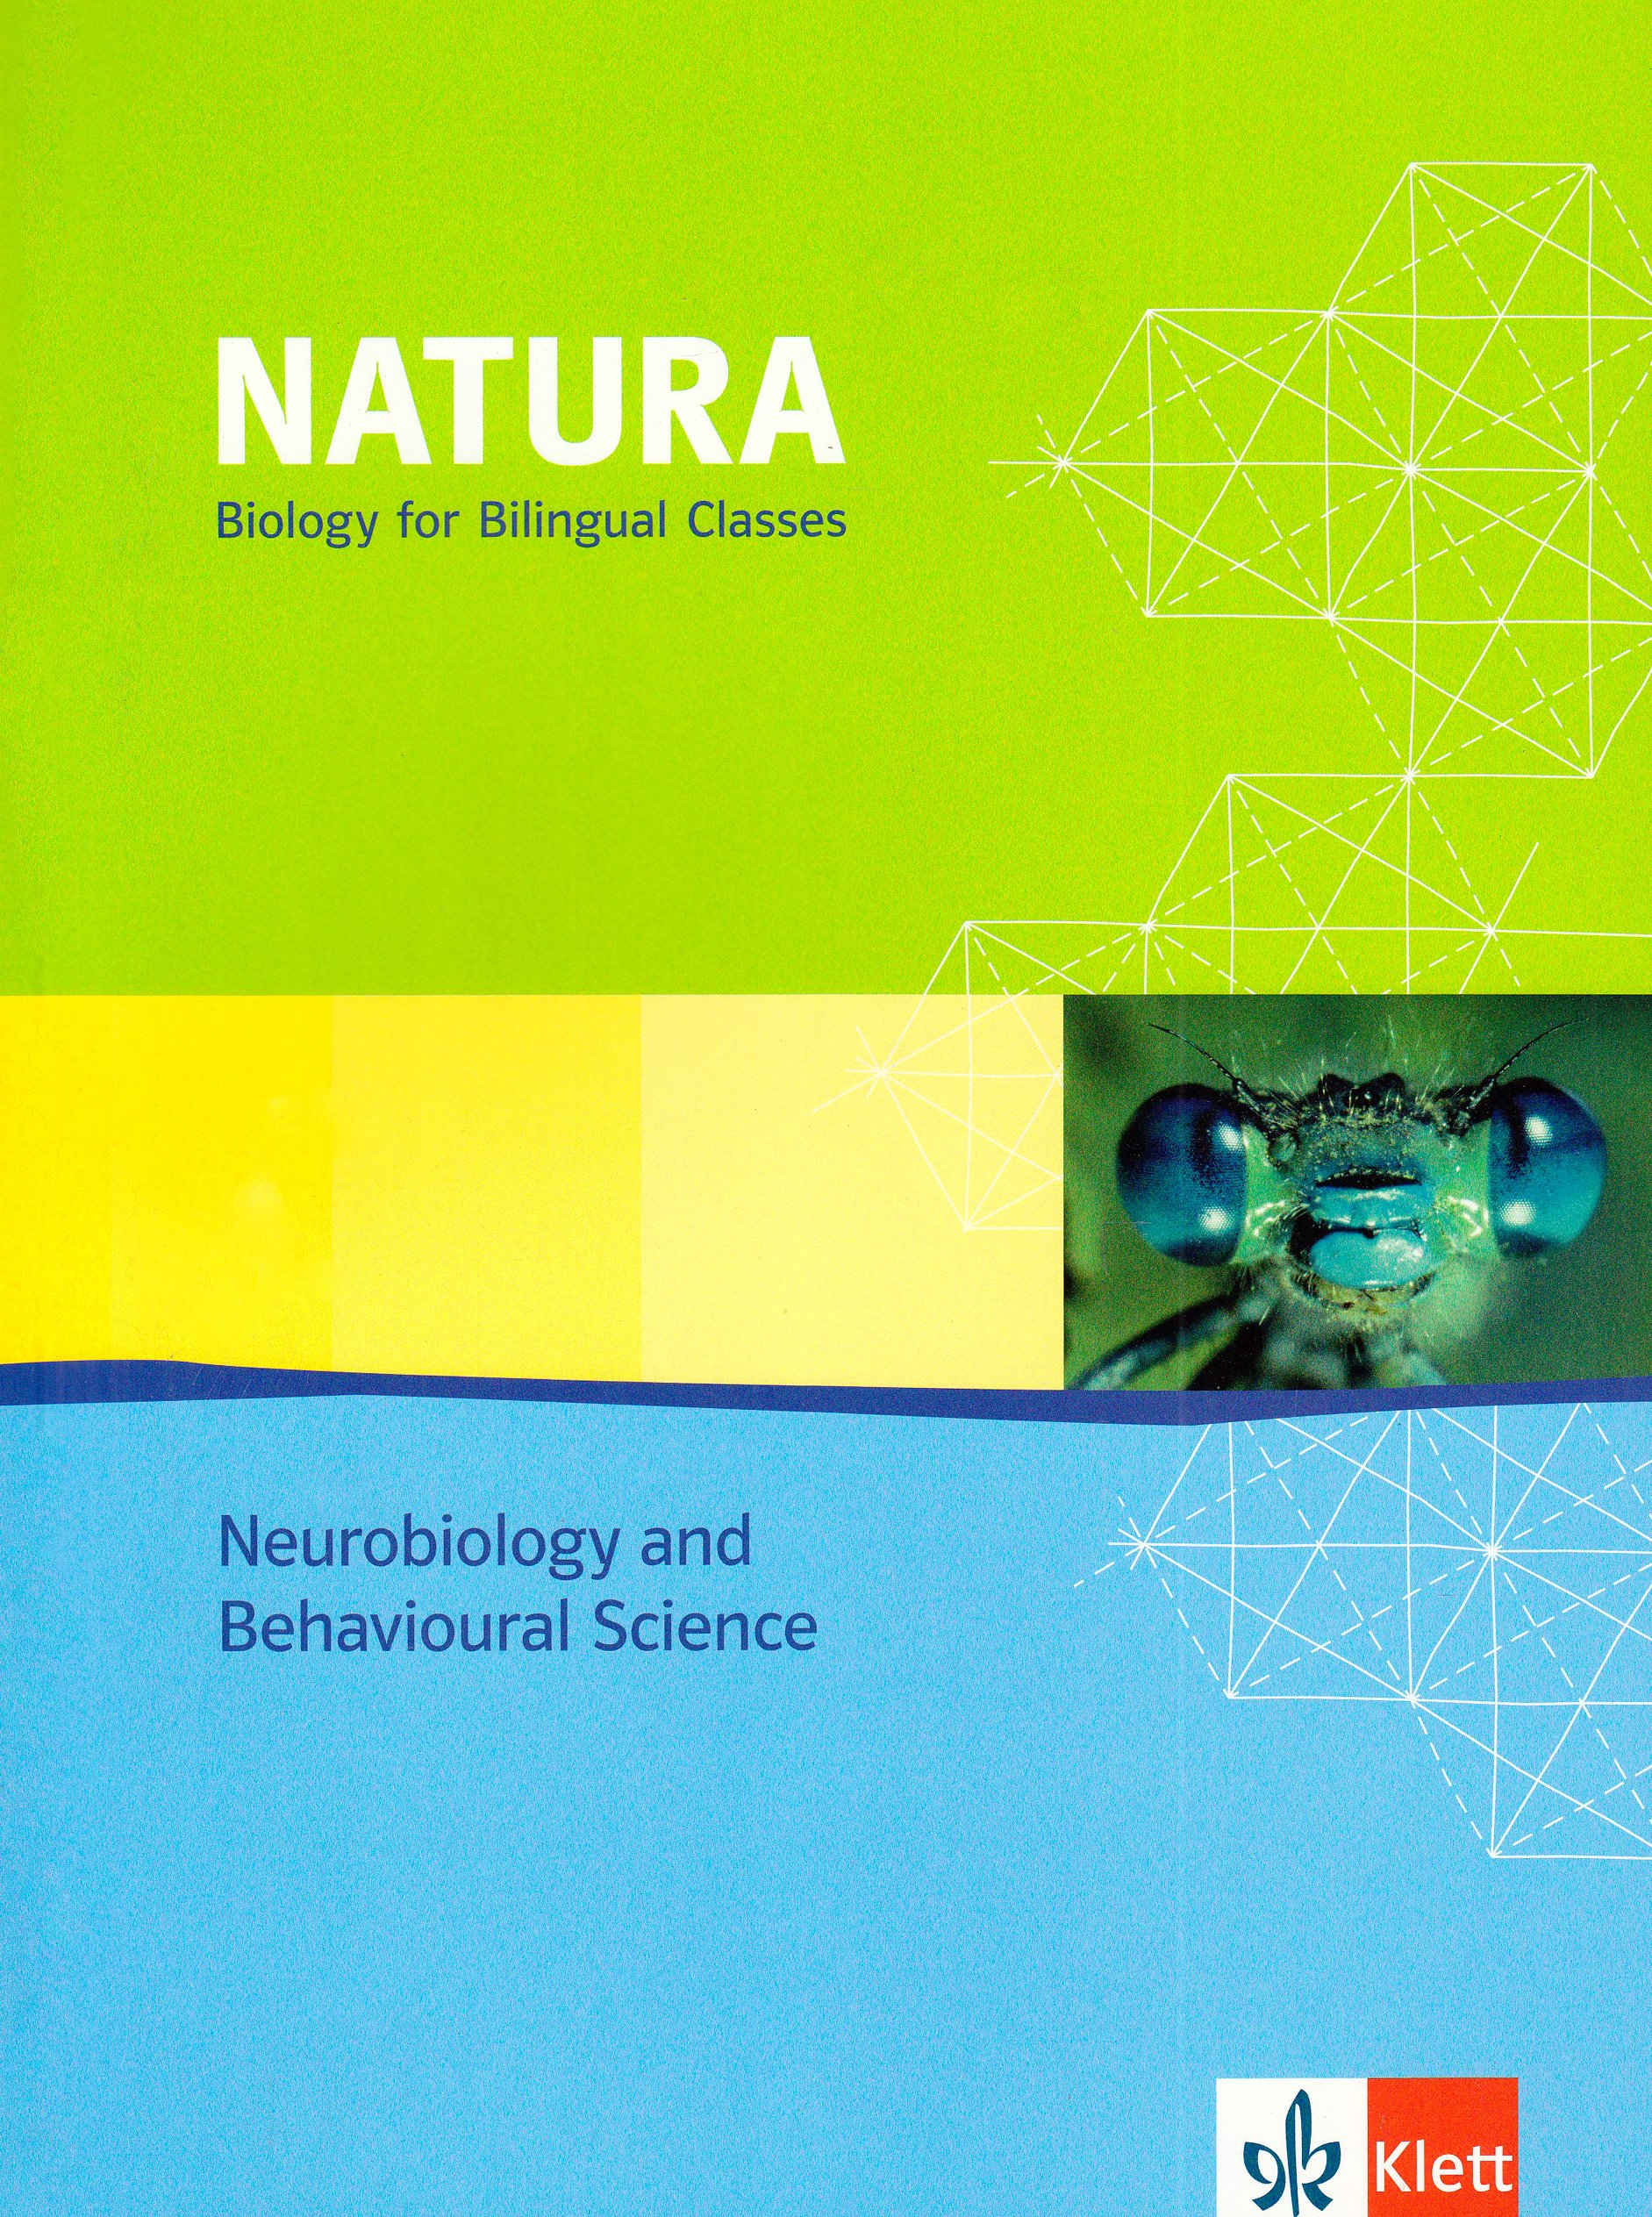 Natura - Biology for bilingual classes / Neurobiology and Behavioural Science